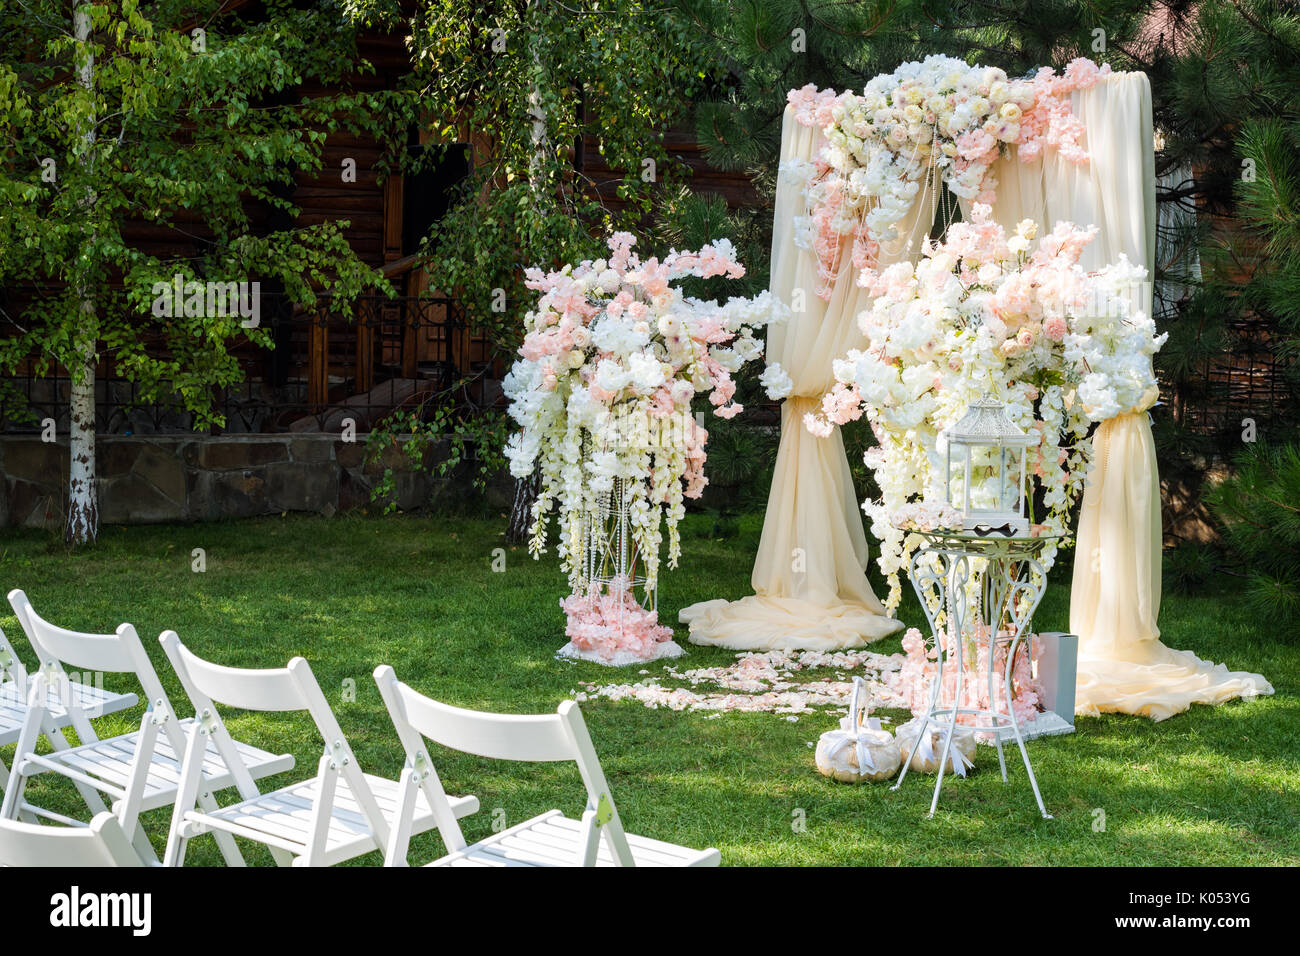 Wedding Arch Decorated With Cloth And Flowers Outdoors Beautiful